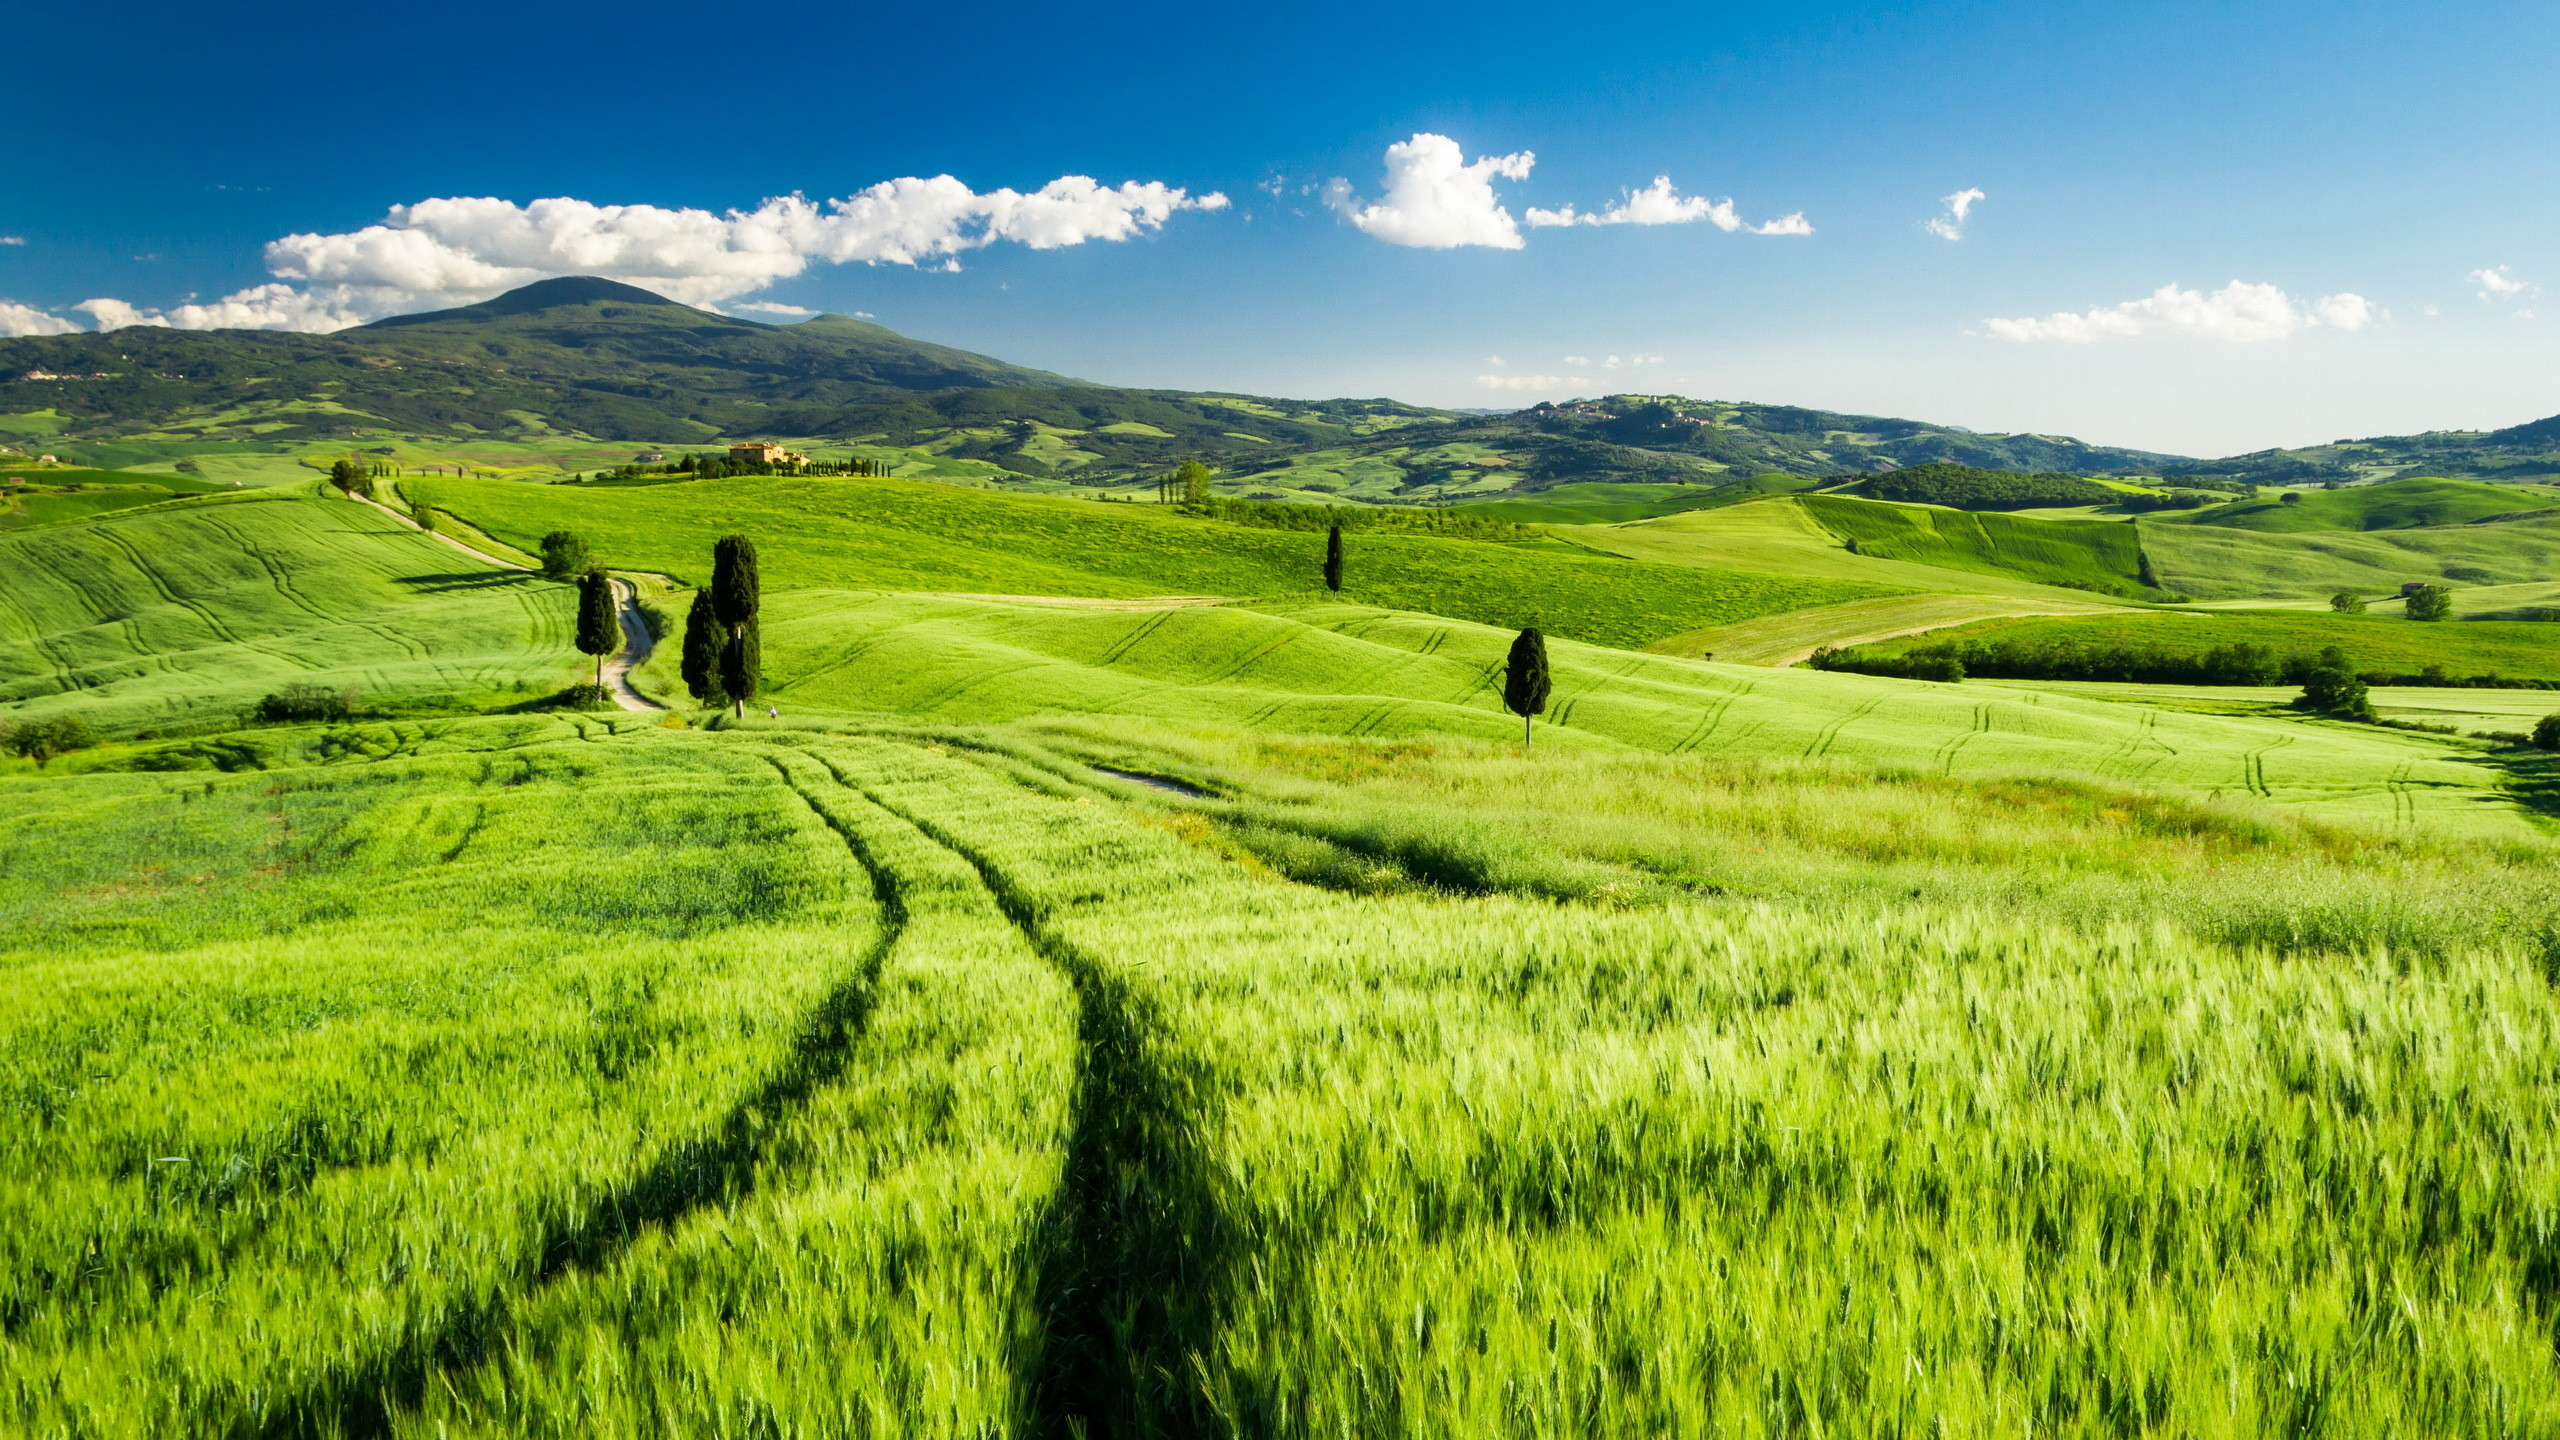 2560x1440 Home - Wallpapers / Photographs - Locality, Landscape - Bright Tuscany.  Bright Tuscany